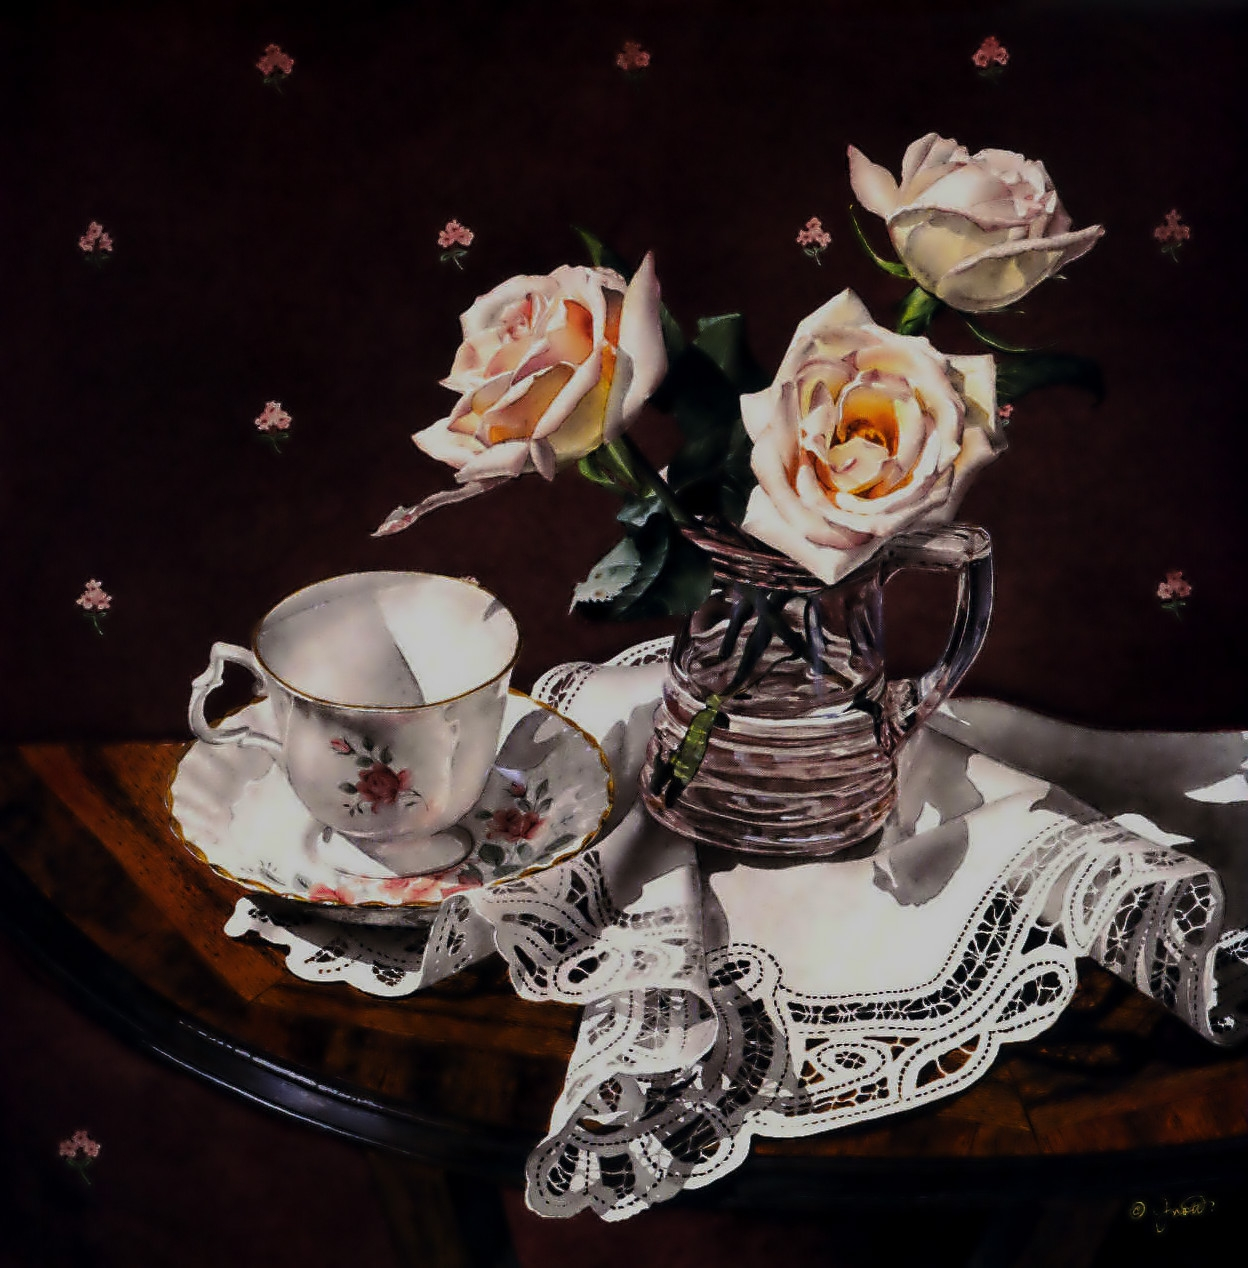 Still Life with Pink Roses and Tea Cup